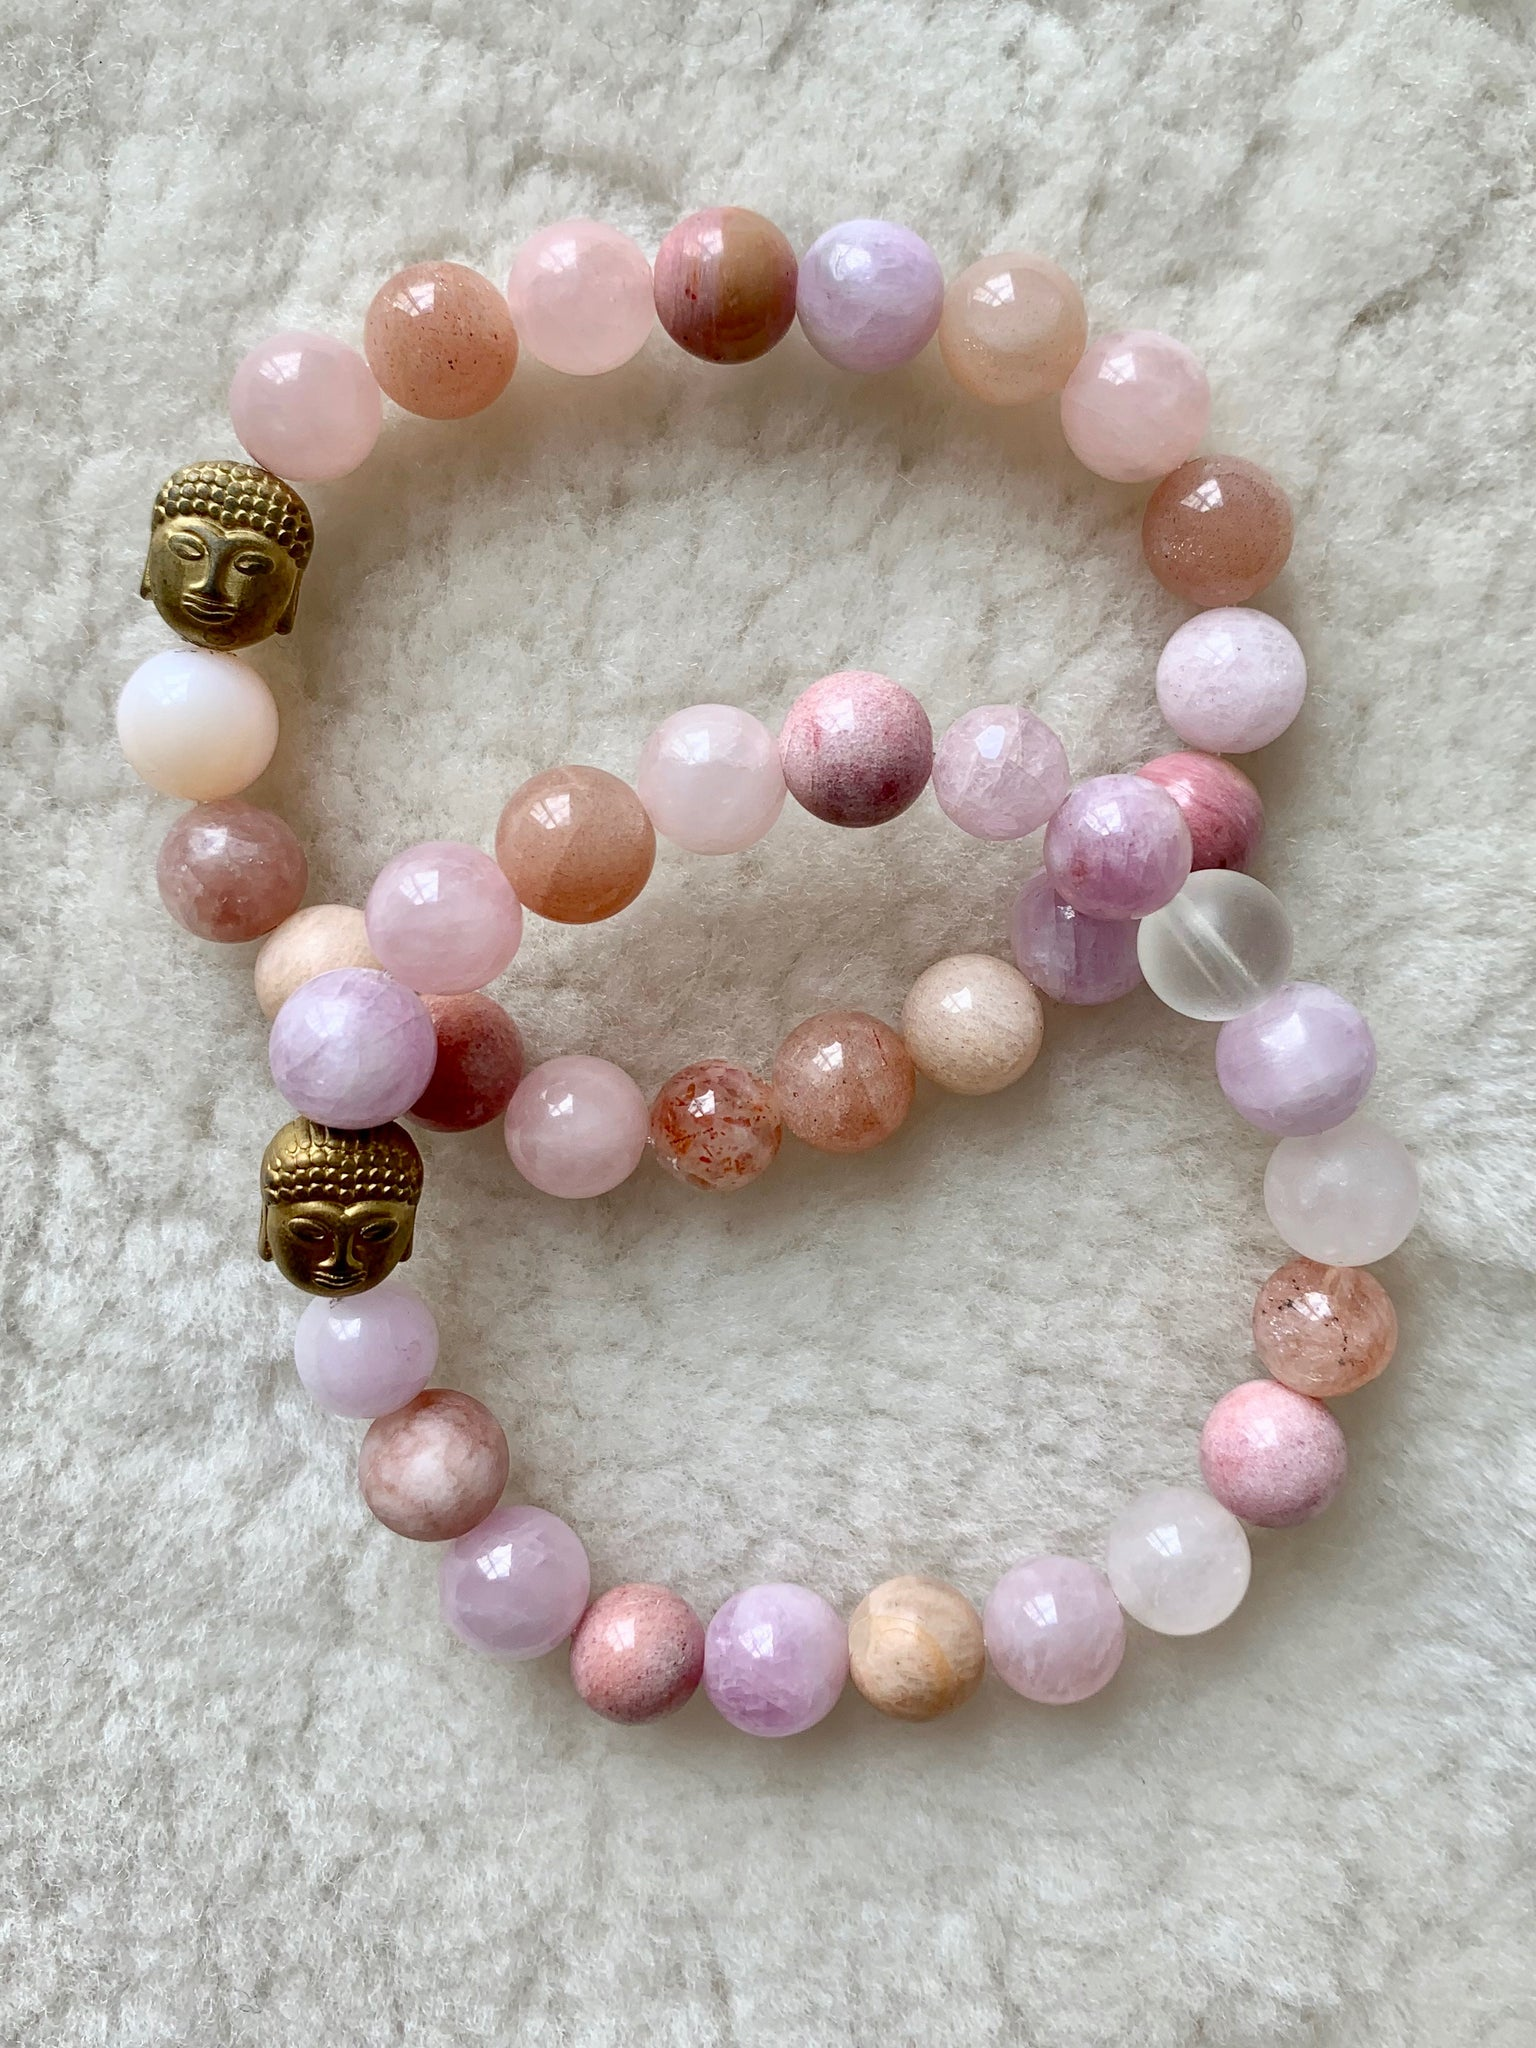 gratitude rose quartz gemstone bracelet | radiant malas | handmade in Boulder Colorado